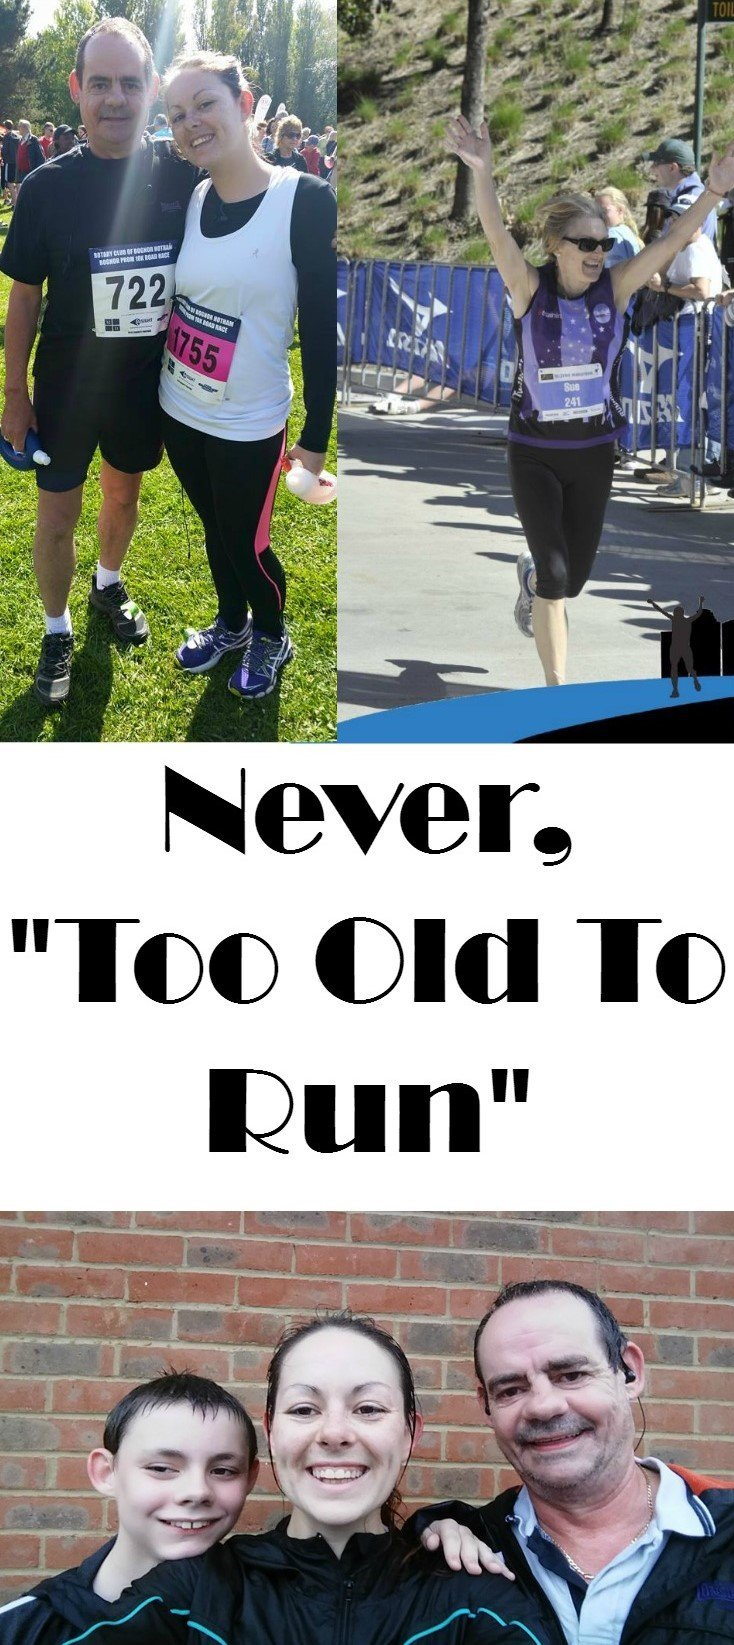 You are never too old to run, and here's why